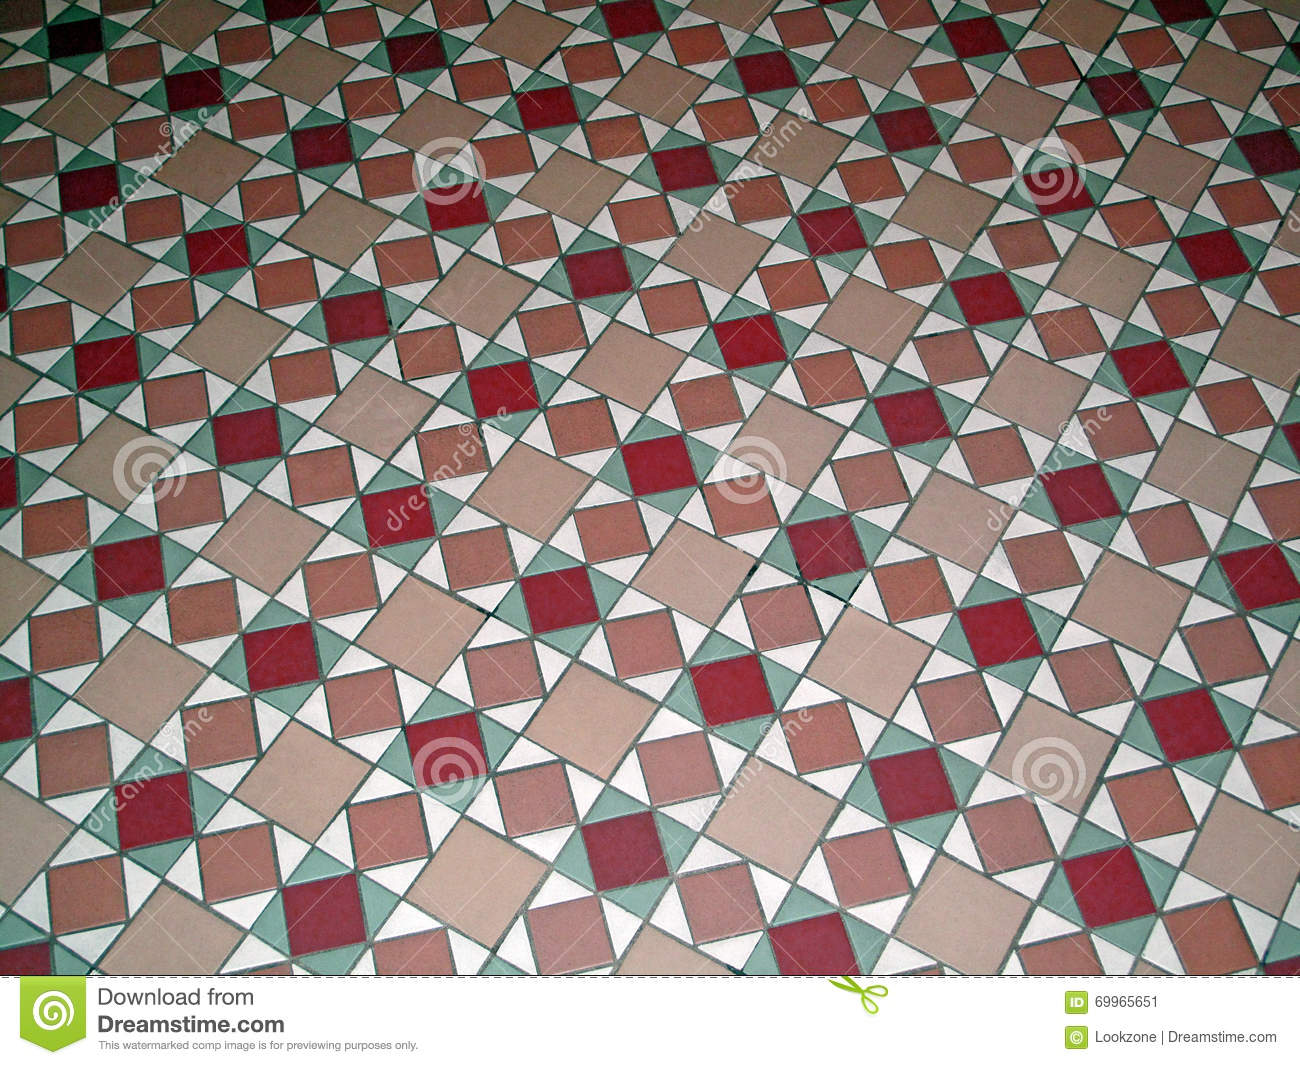 Antique ceramic tile pattern floor stock image image 69965651 antique ceramic tile pattern floor doublecrazyfo Image collections